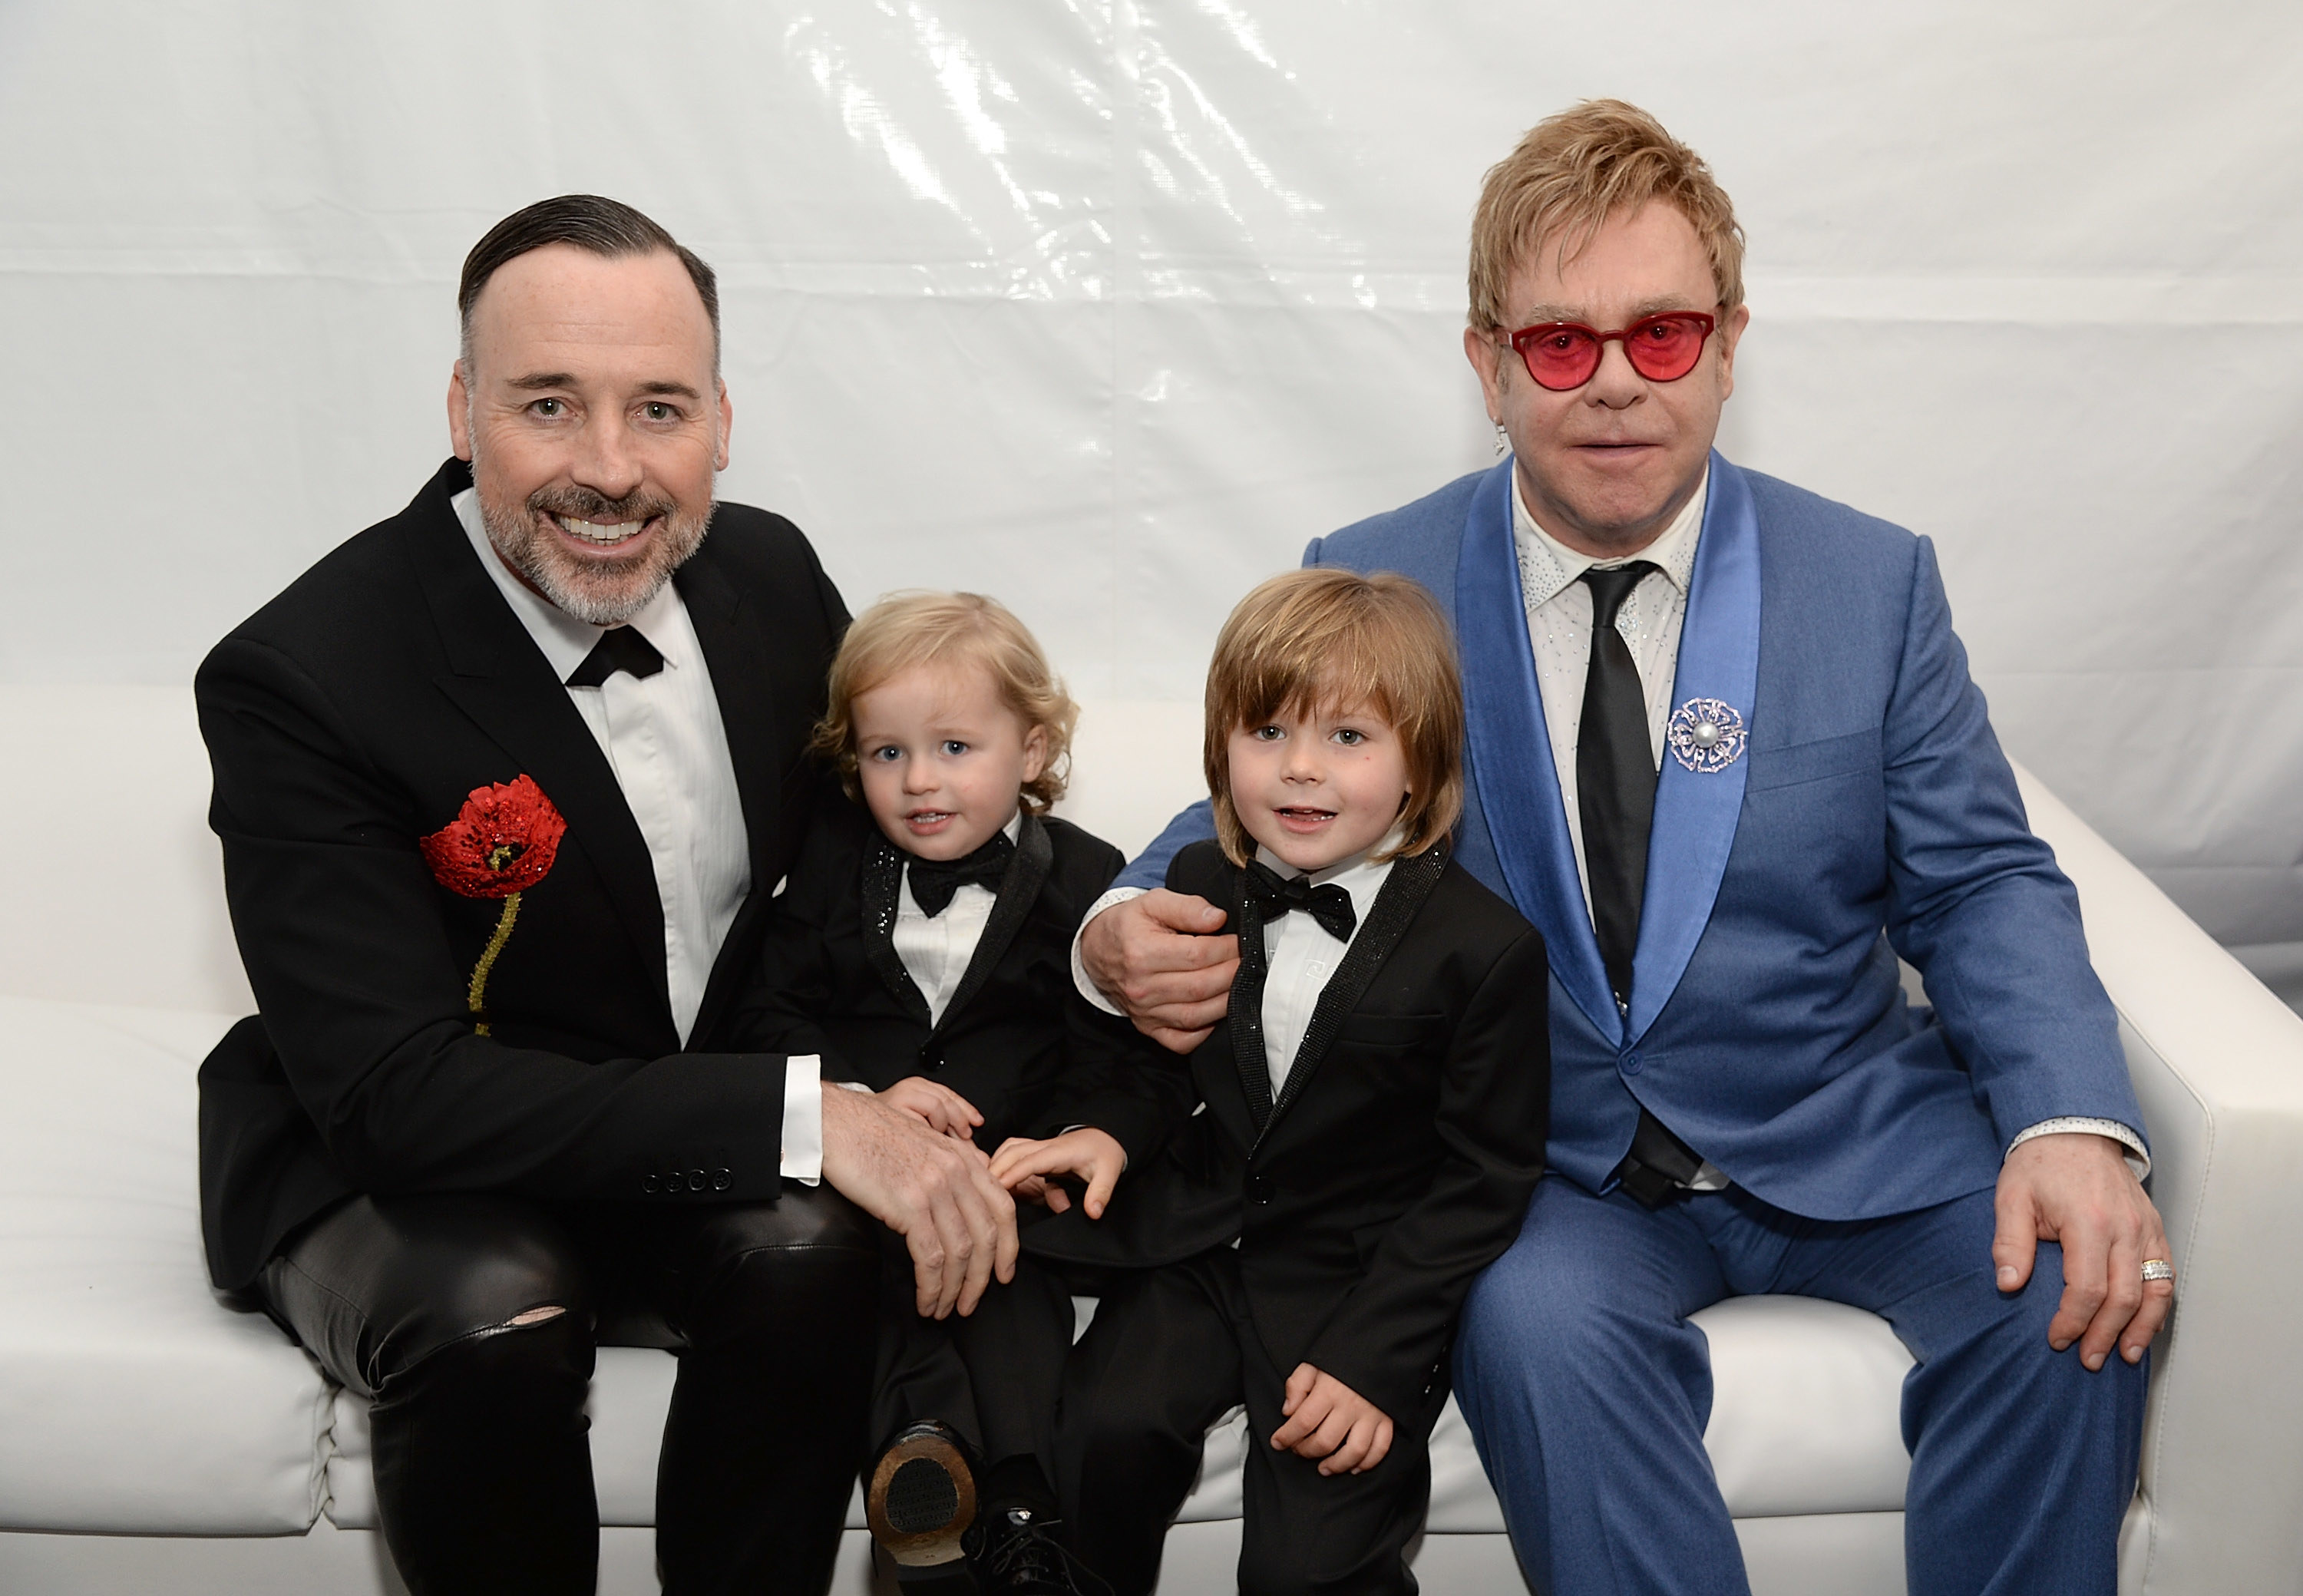 David and Elton sit on a couch and put their arms around their young twin sons